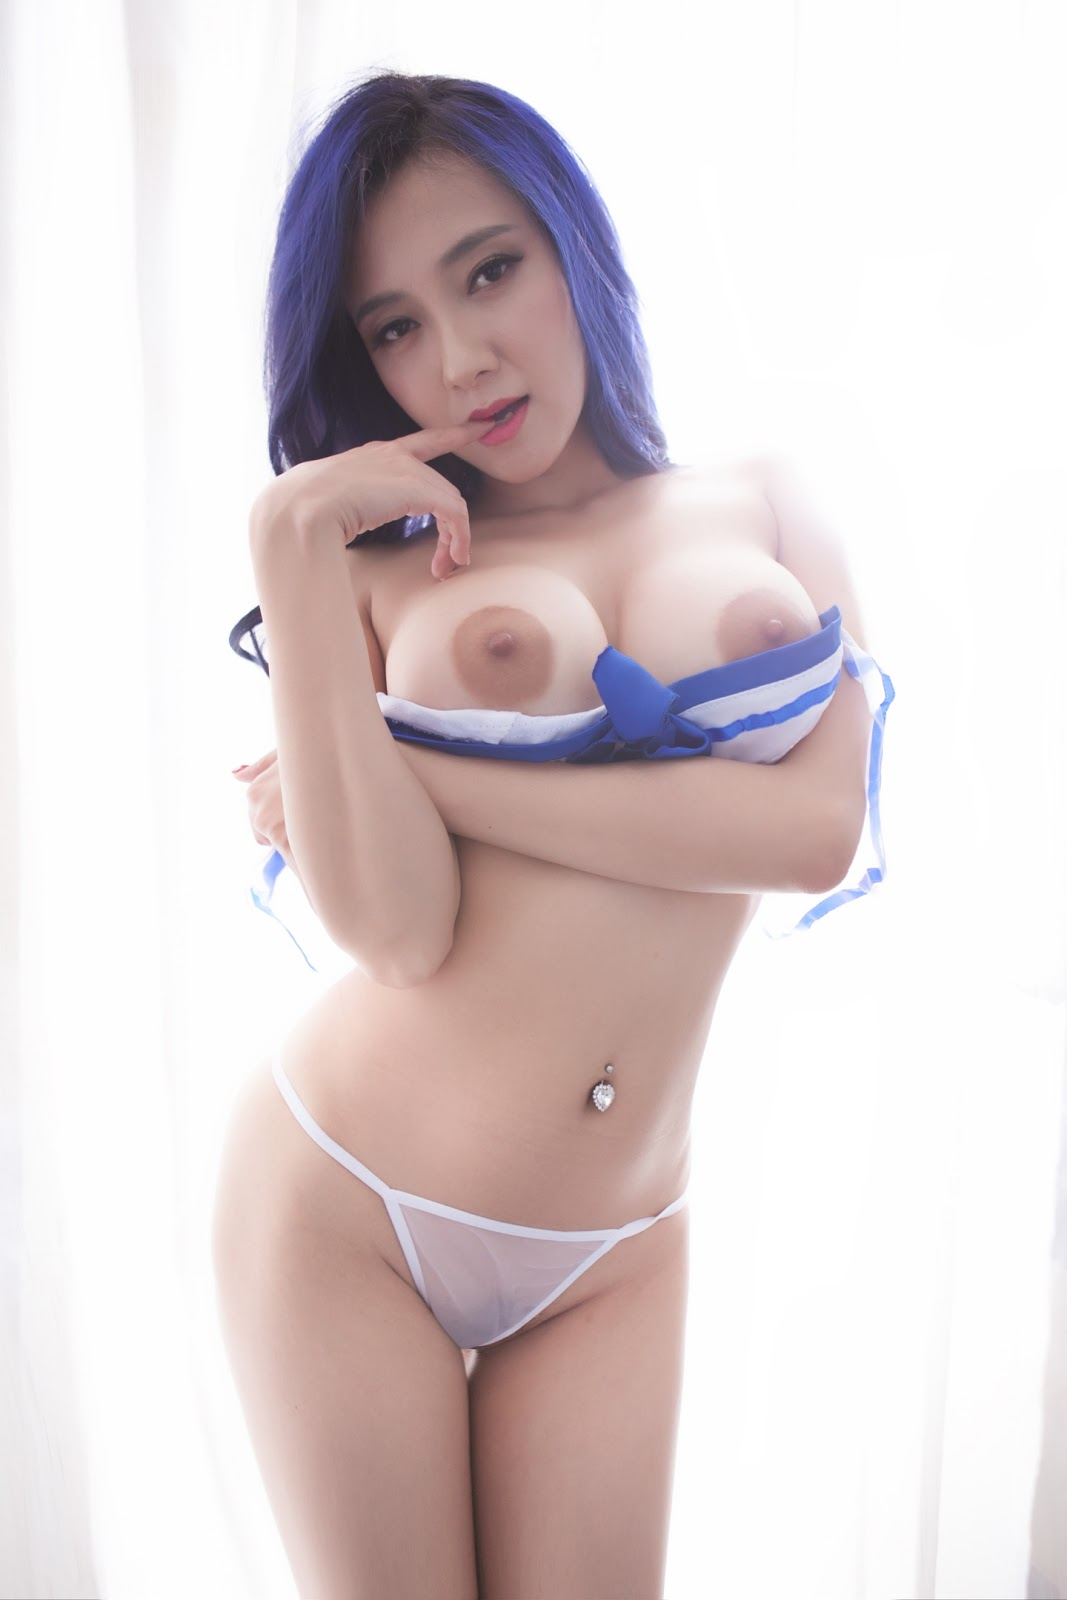 xdZcotyXbVs - Big tits chinese model song gue er hottes